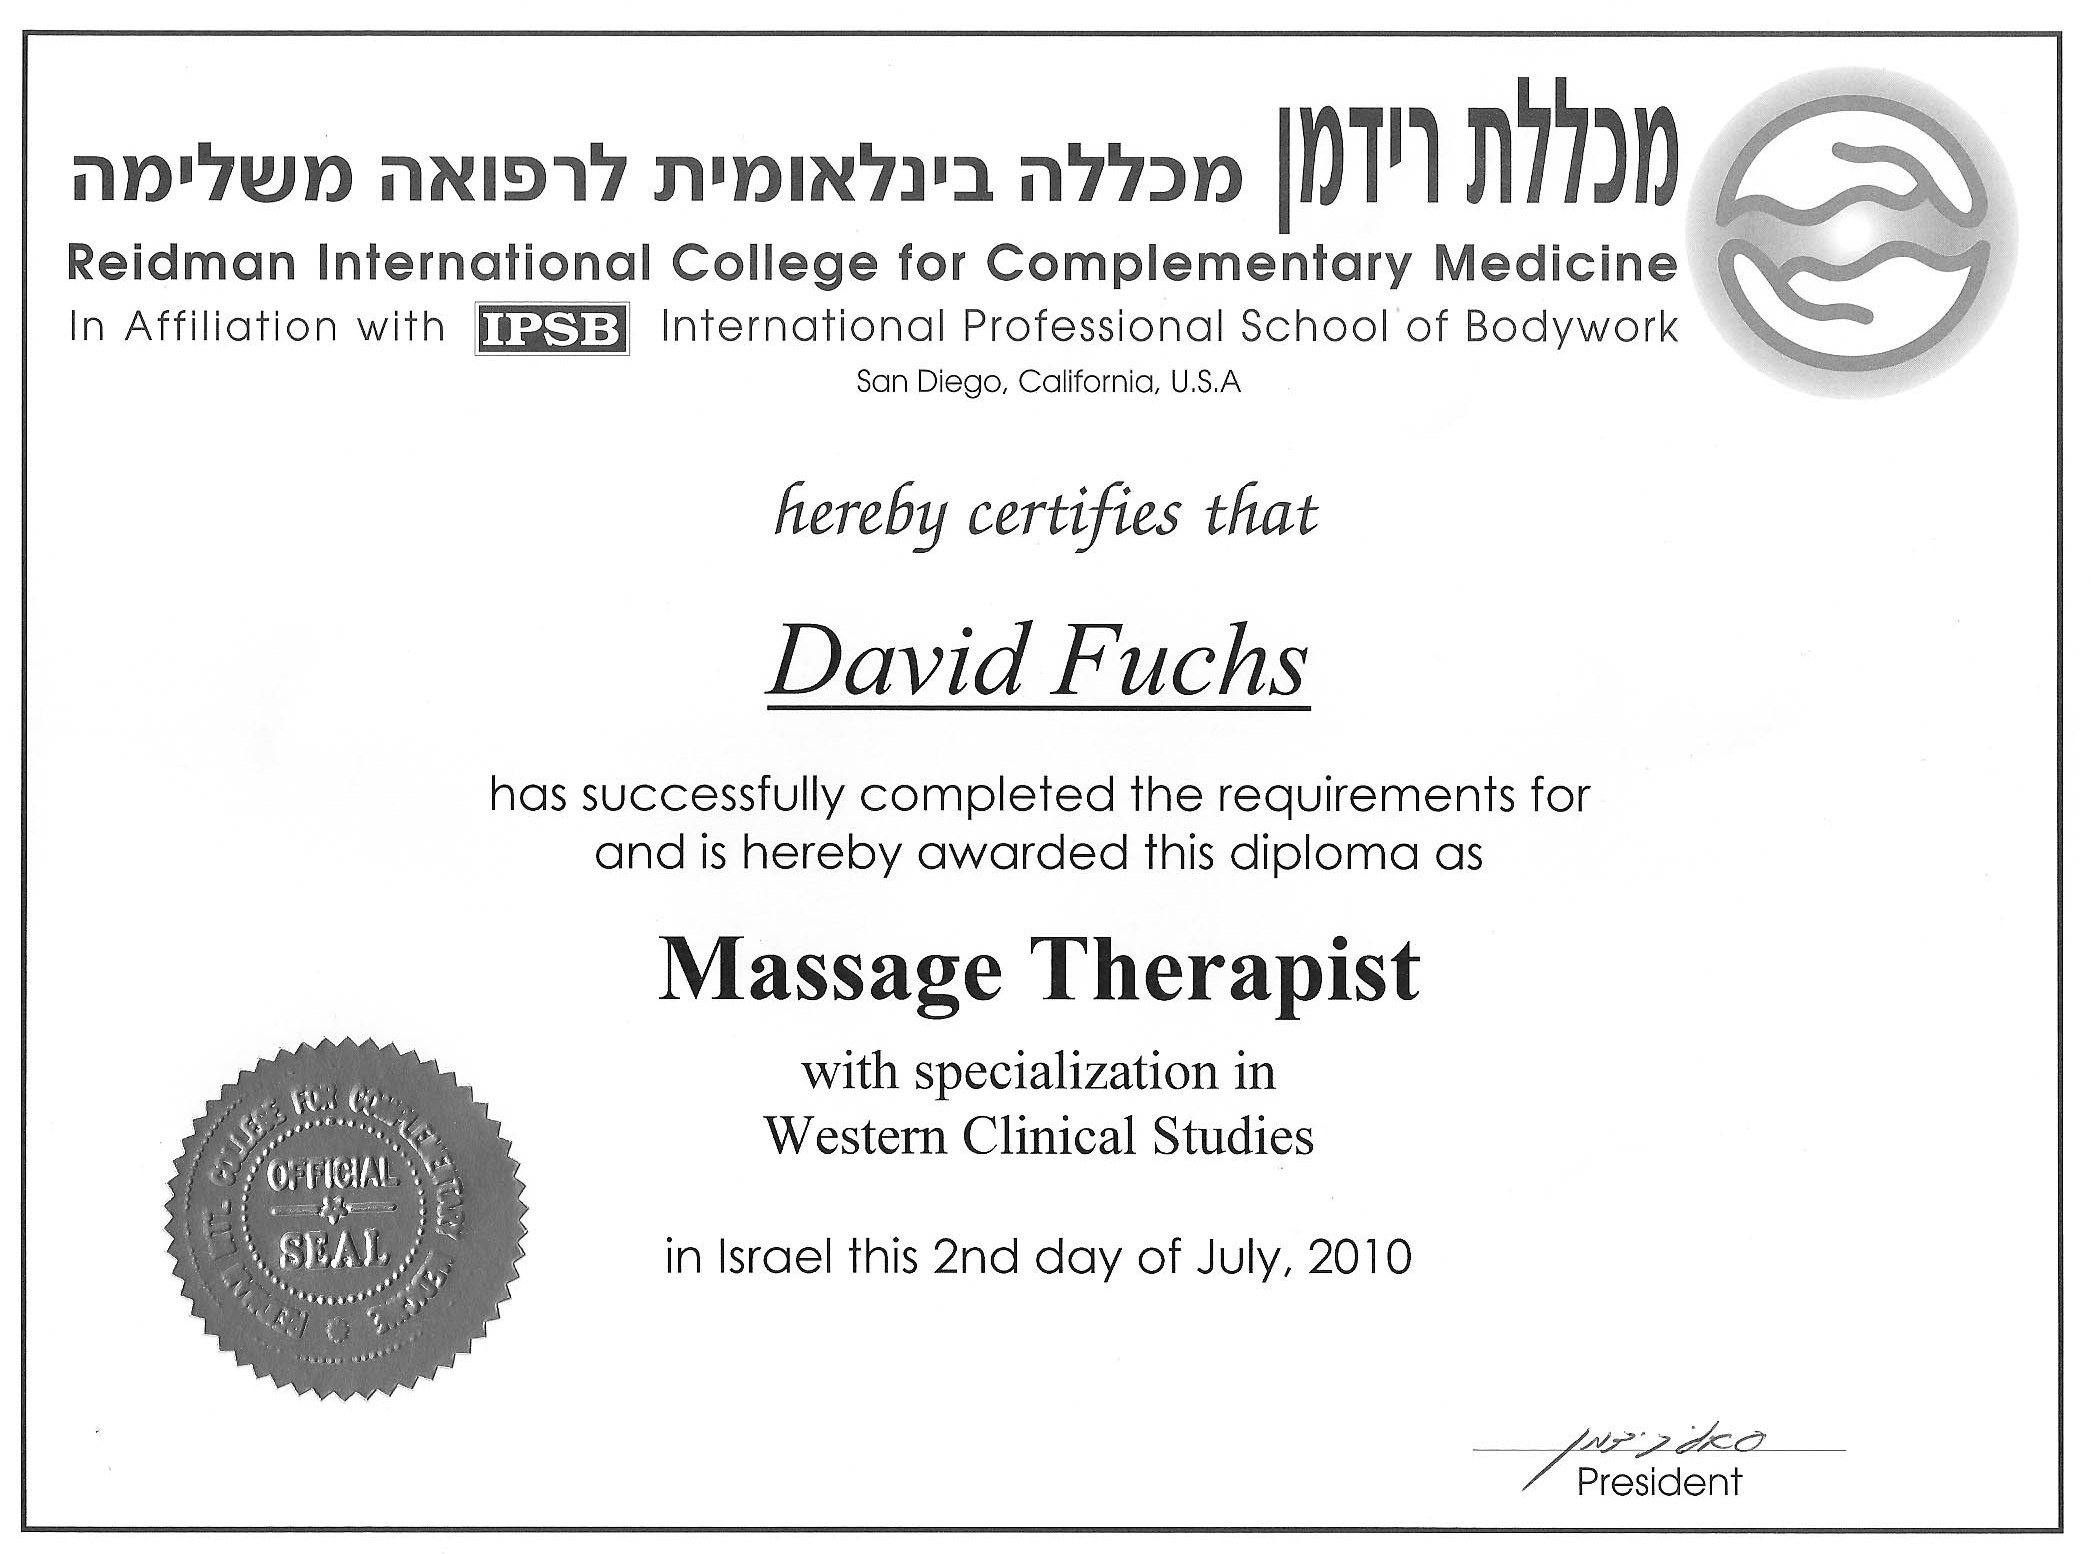 massage therapist-westeran clinical.jpg